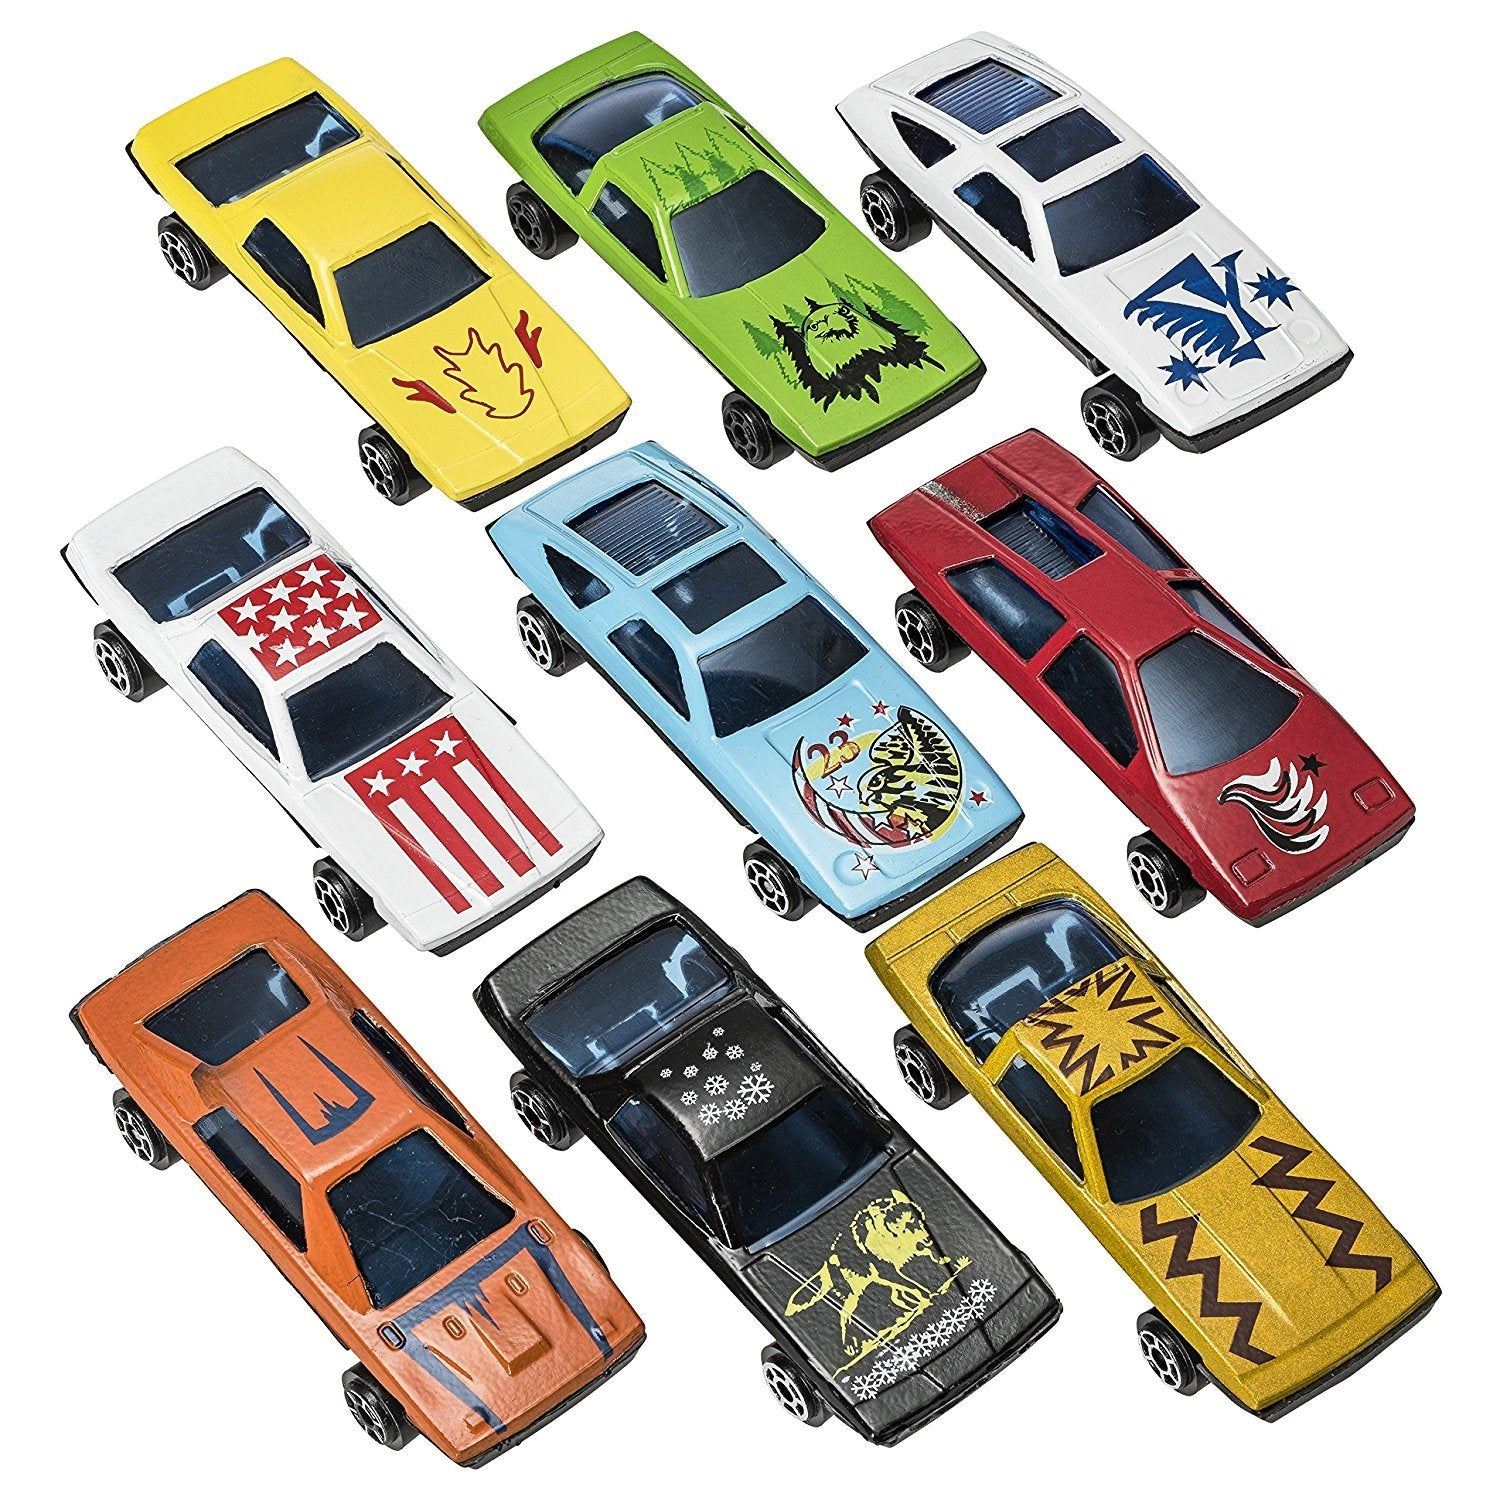 Wholesale 50 Pc Die Cast Toy Cars Party Favors Easter Eggs Filler or Cake  Toppers Stocking Stuffers Cars Toys For Kids